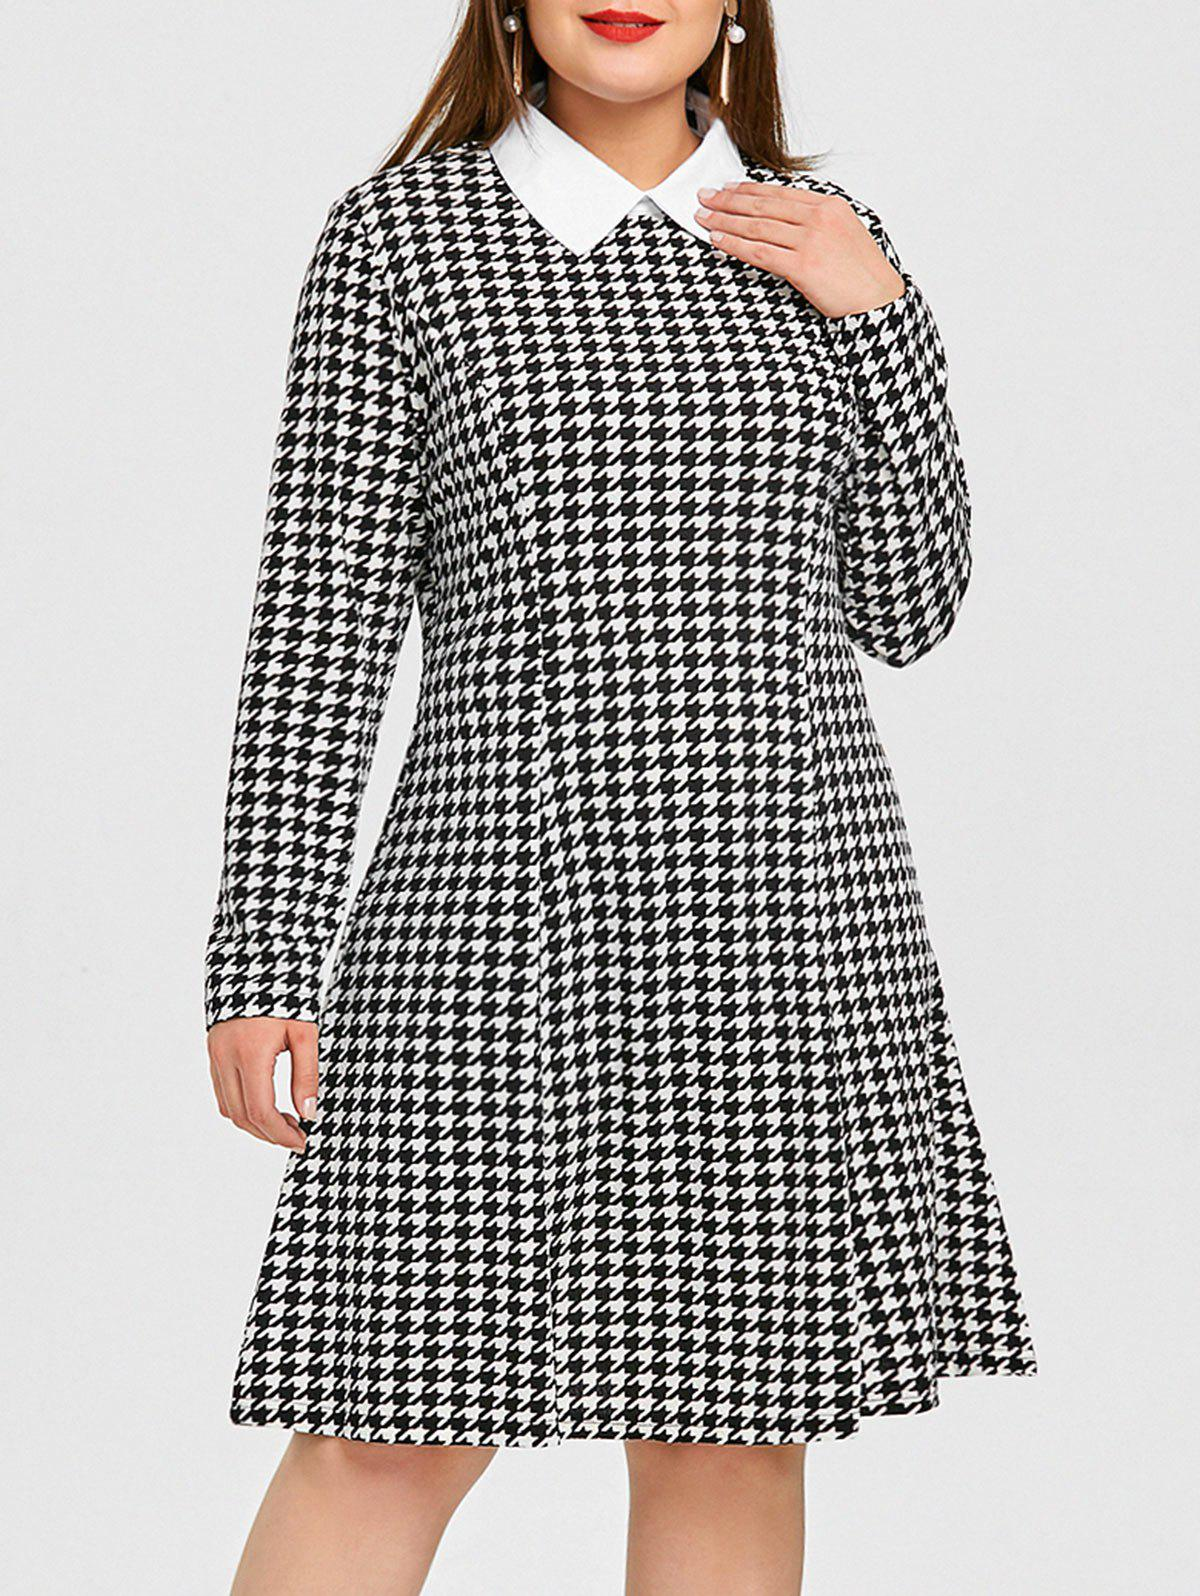 Chic Houndstooth Shirt Collar Plus Size Dress